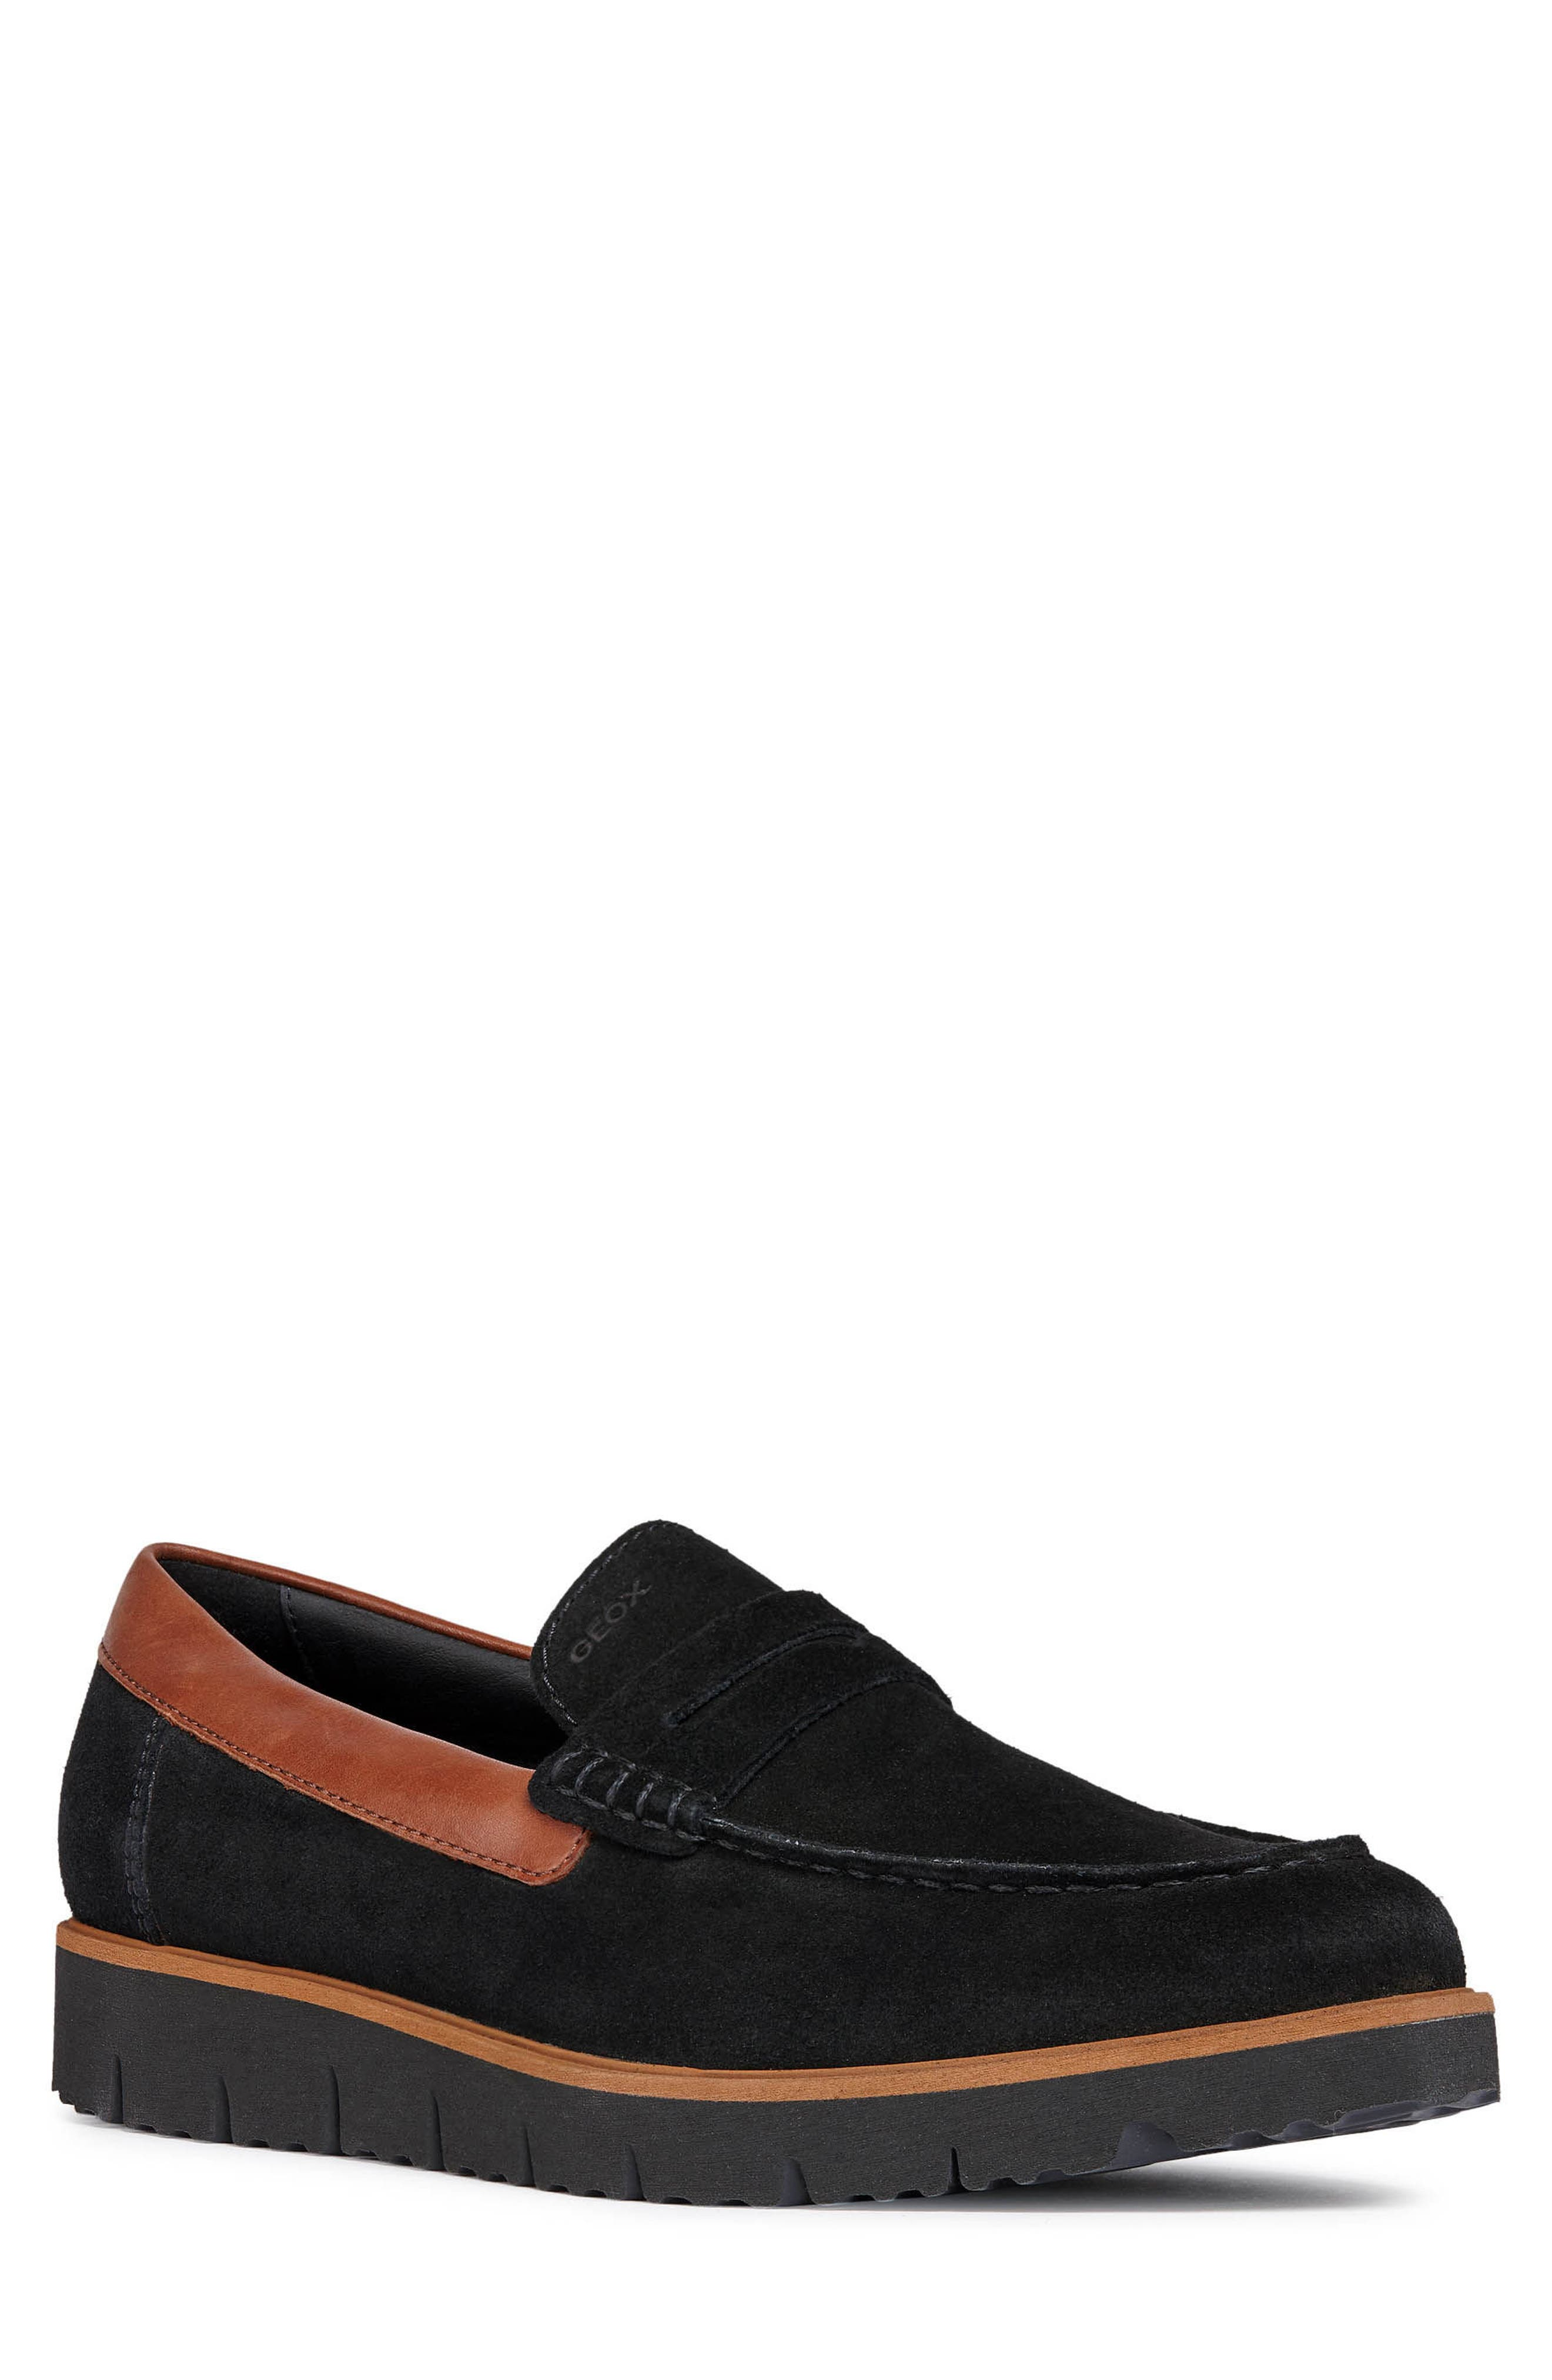 New Pluges 6 Penny Loafer,                             Main thumbnail 1, color,                             BLACK/ BROWN LEATHER